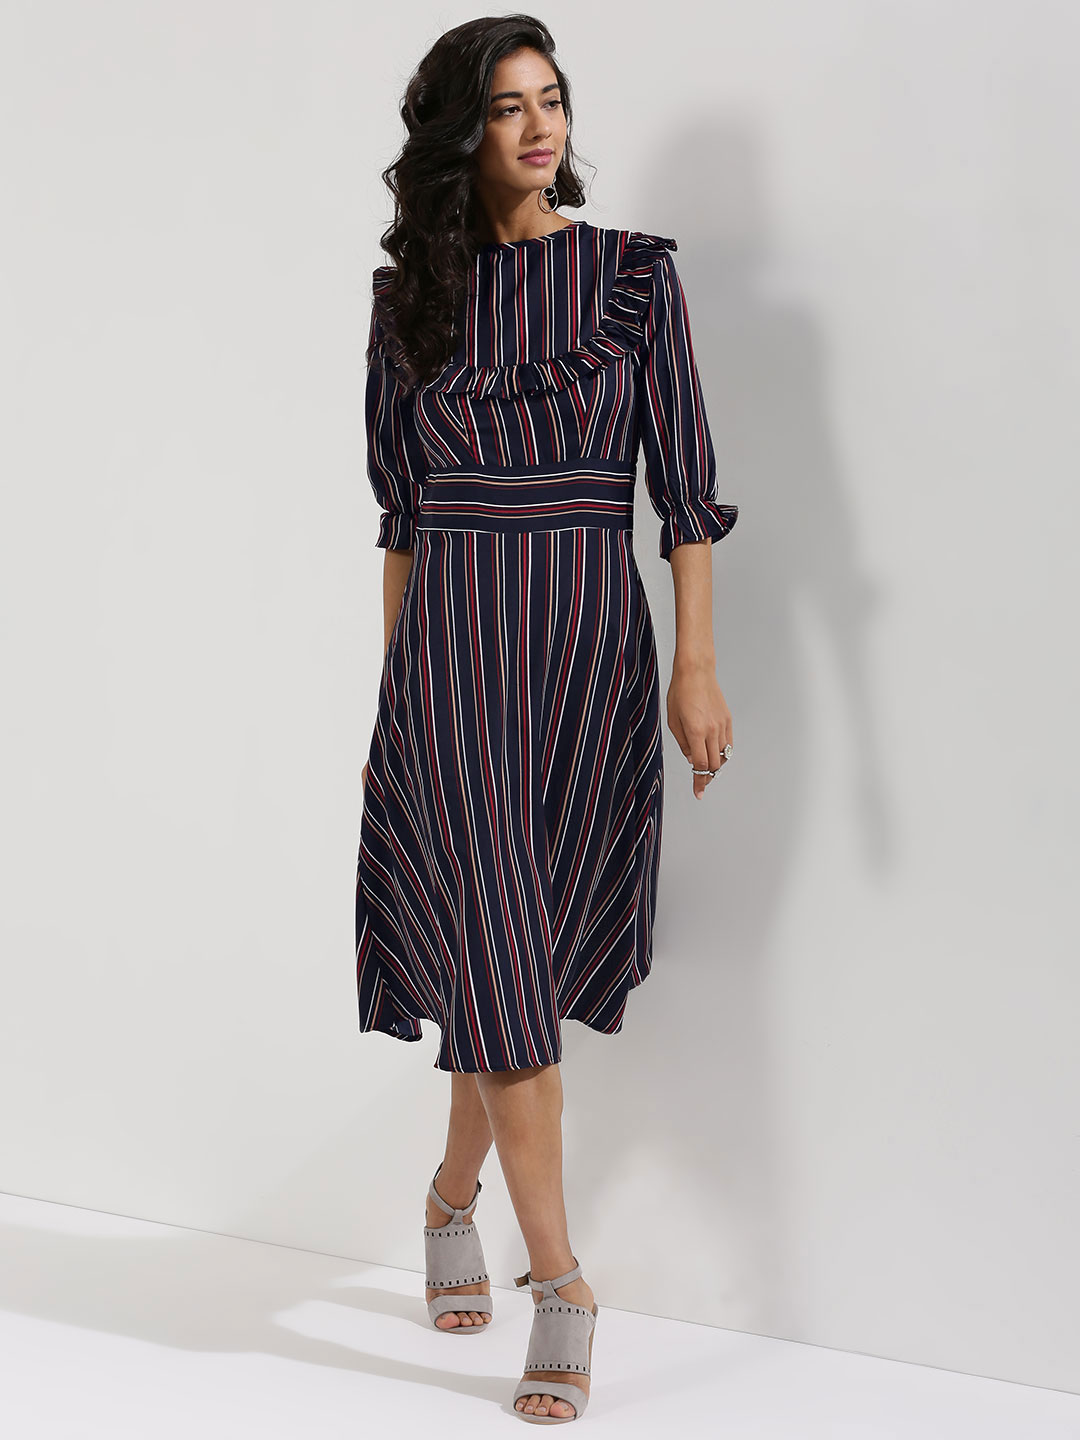 Closet Drama Navy Striped Midi Dress With Frill Detail 1